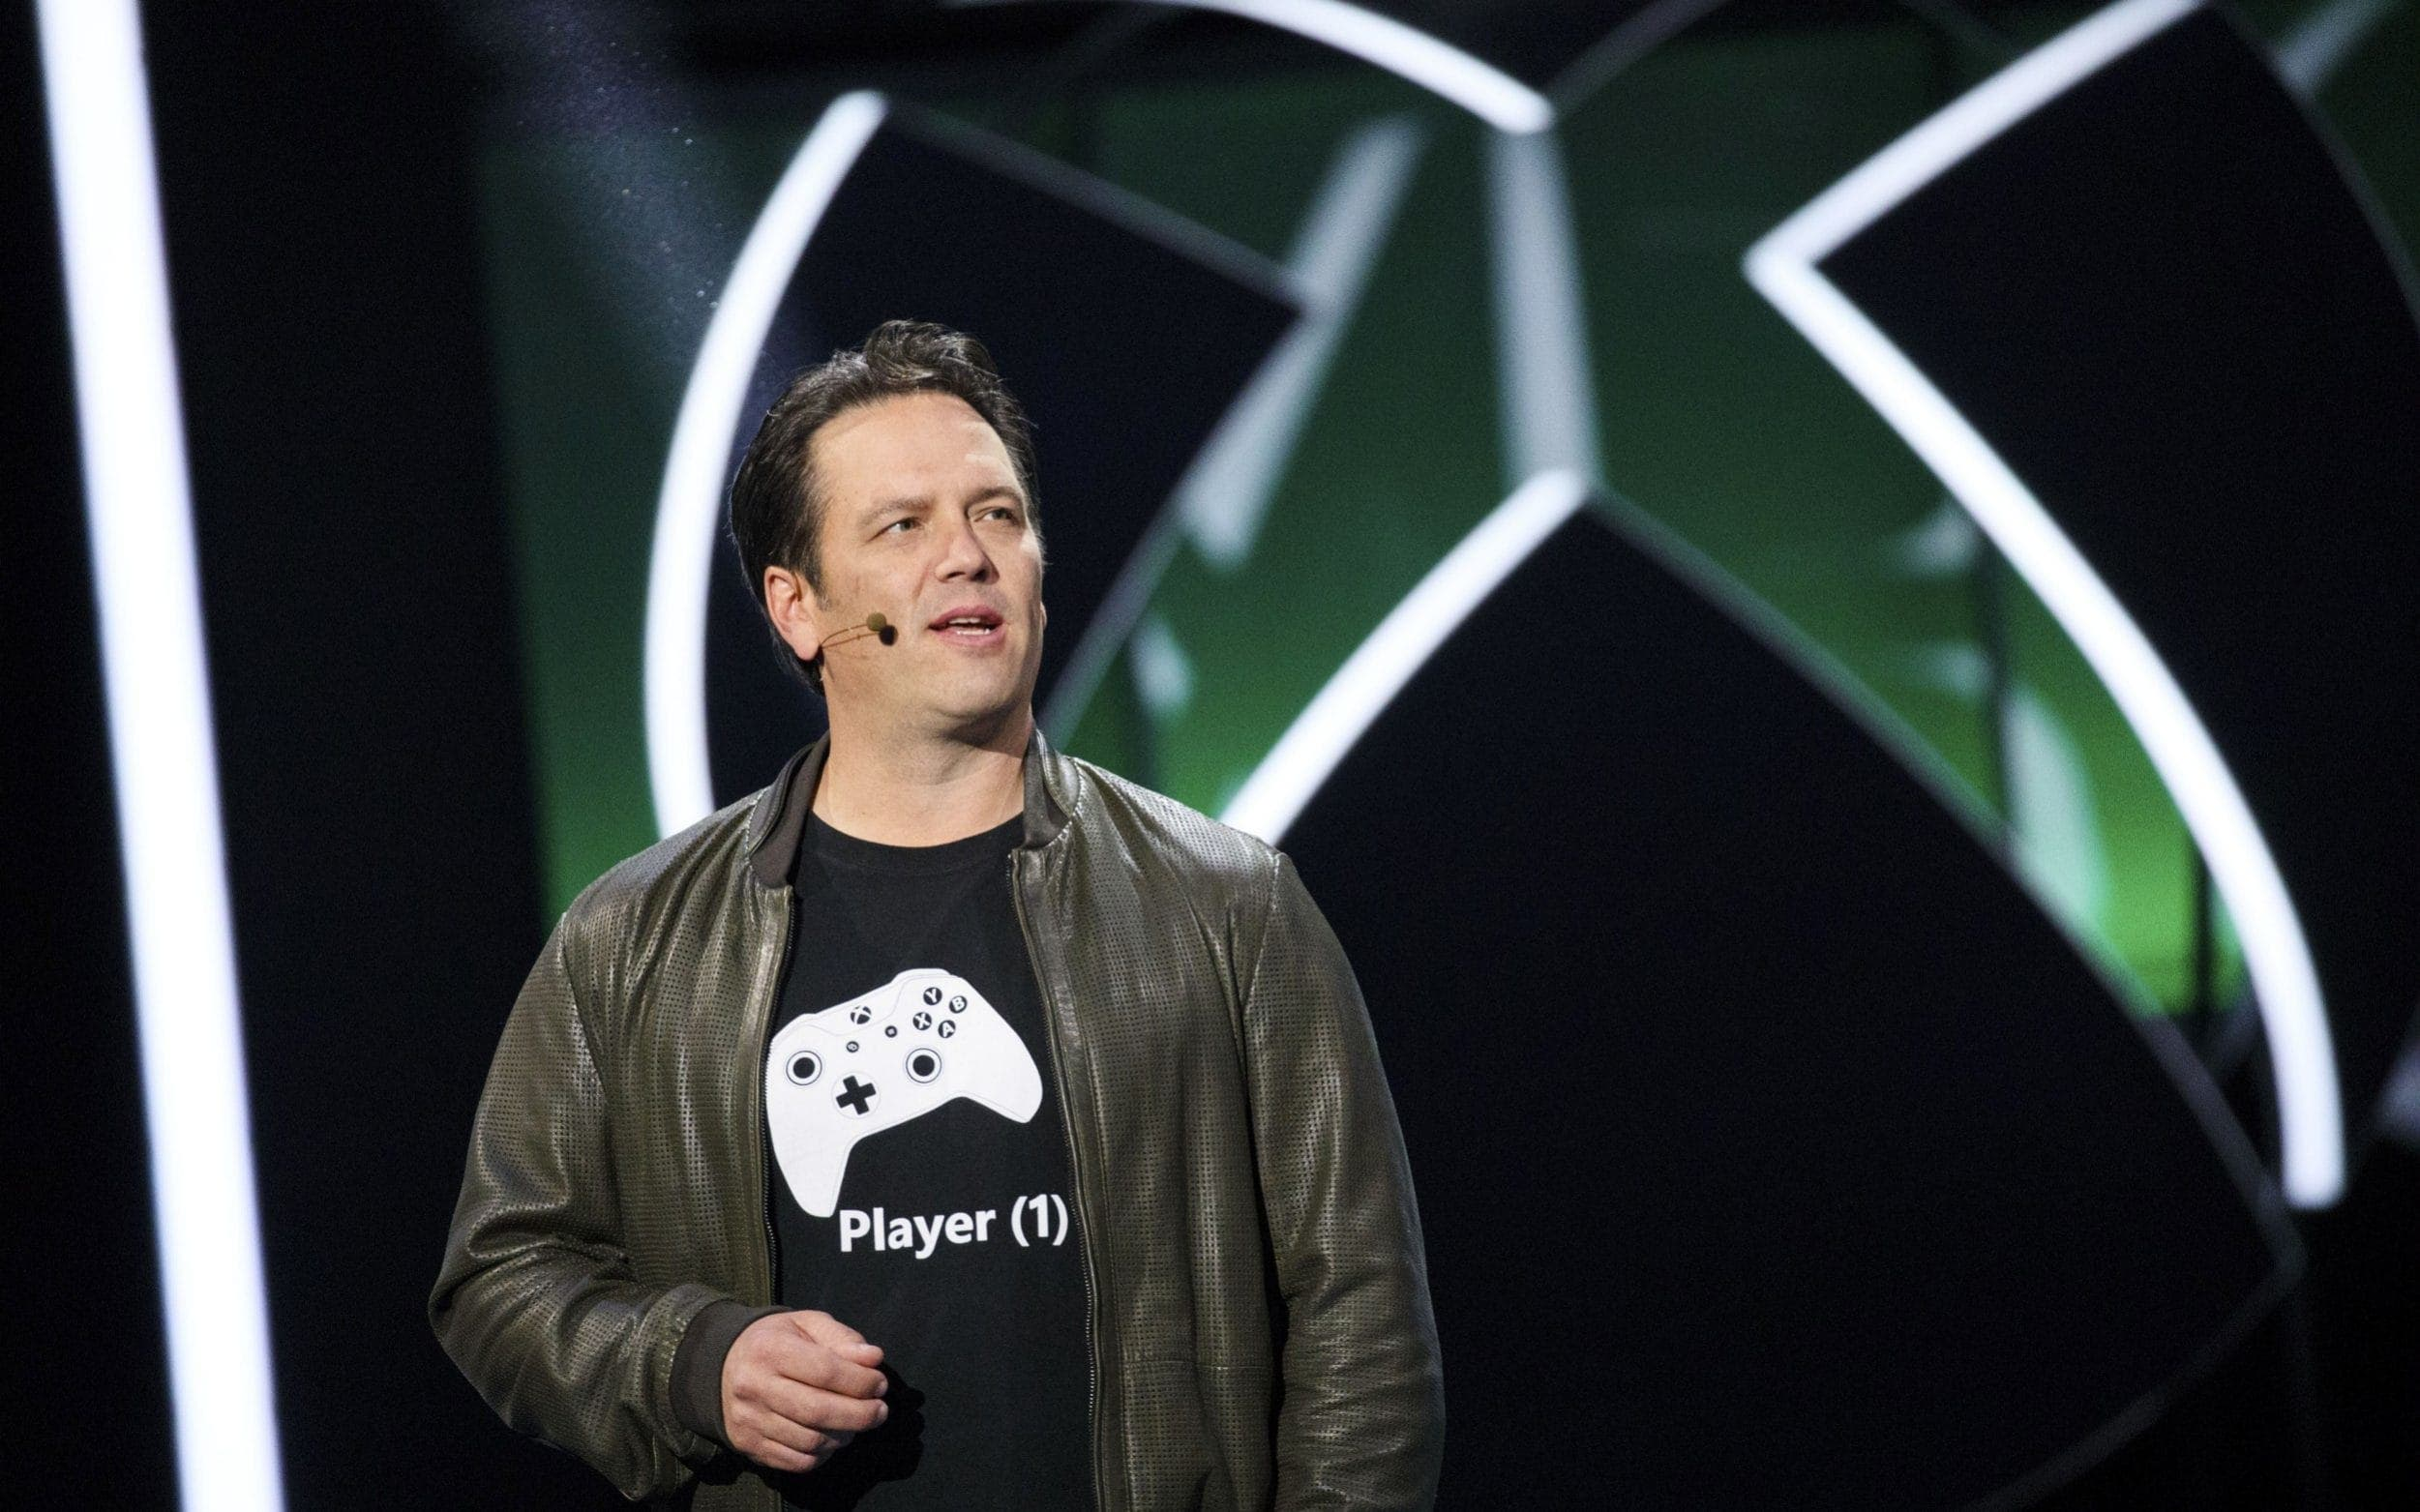 Phil Spencer sigue con Apple entre ceja y ceja: quiere negociar para llevar Game Pass a iOS